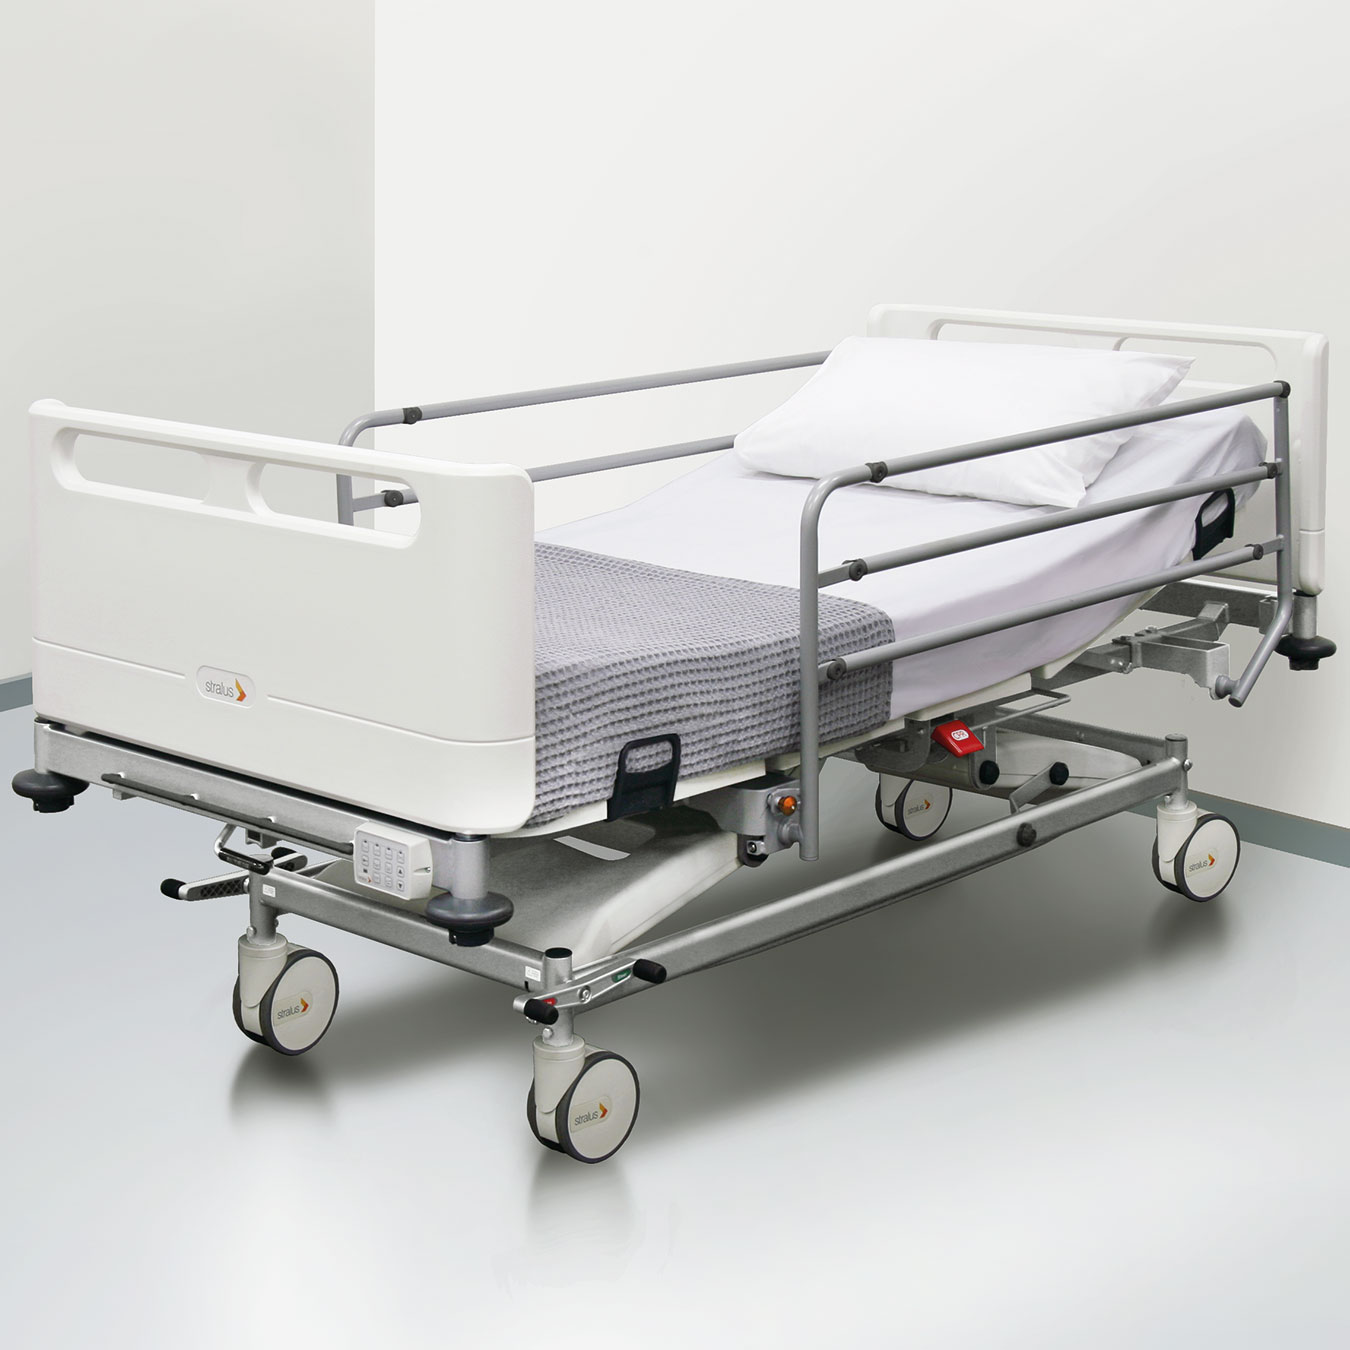 STRWARDC210-Stralus-C210-Acute-Care-Bed-Image-File-1_v1